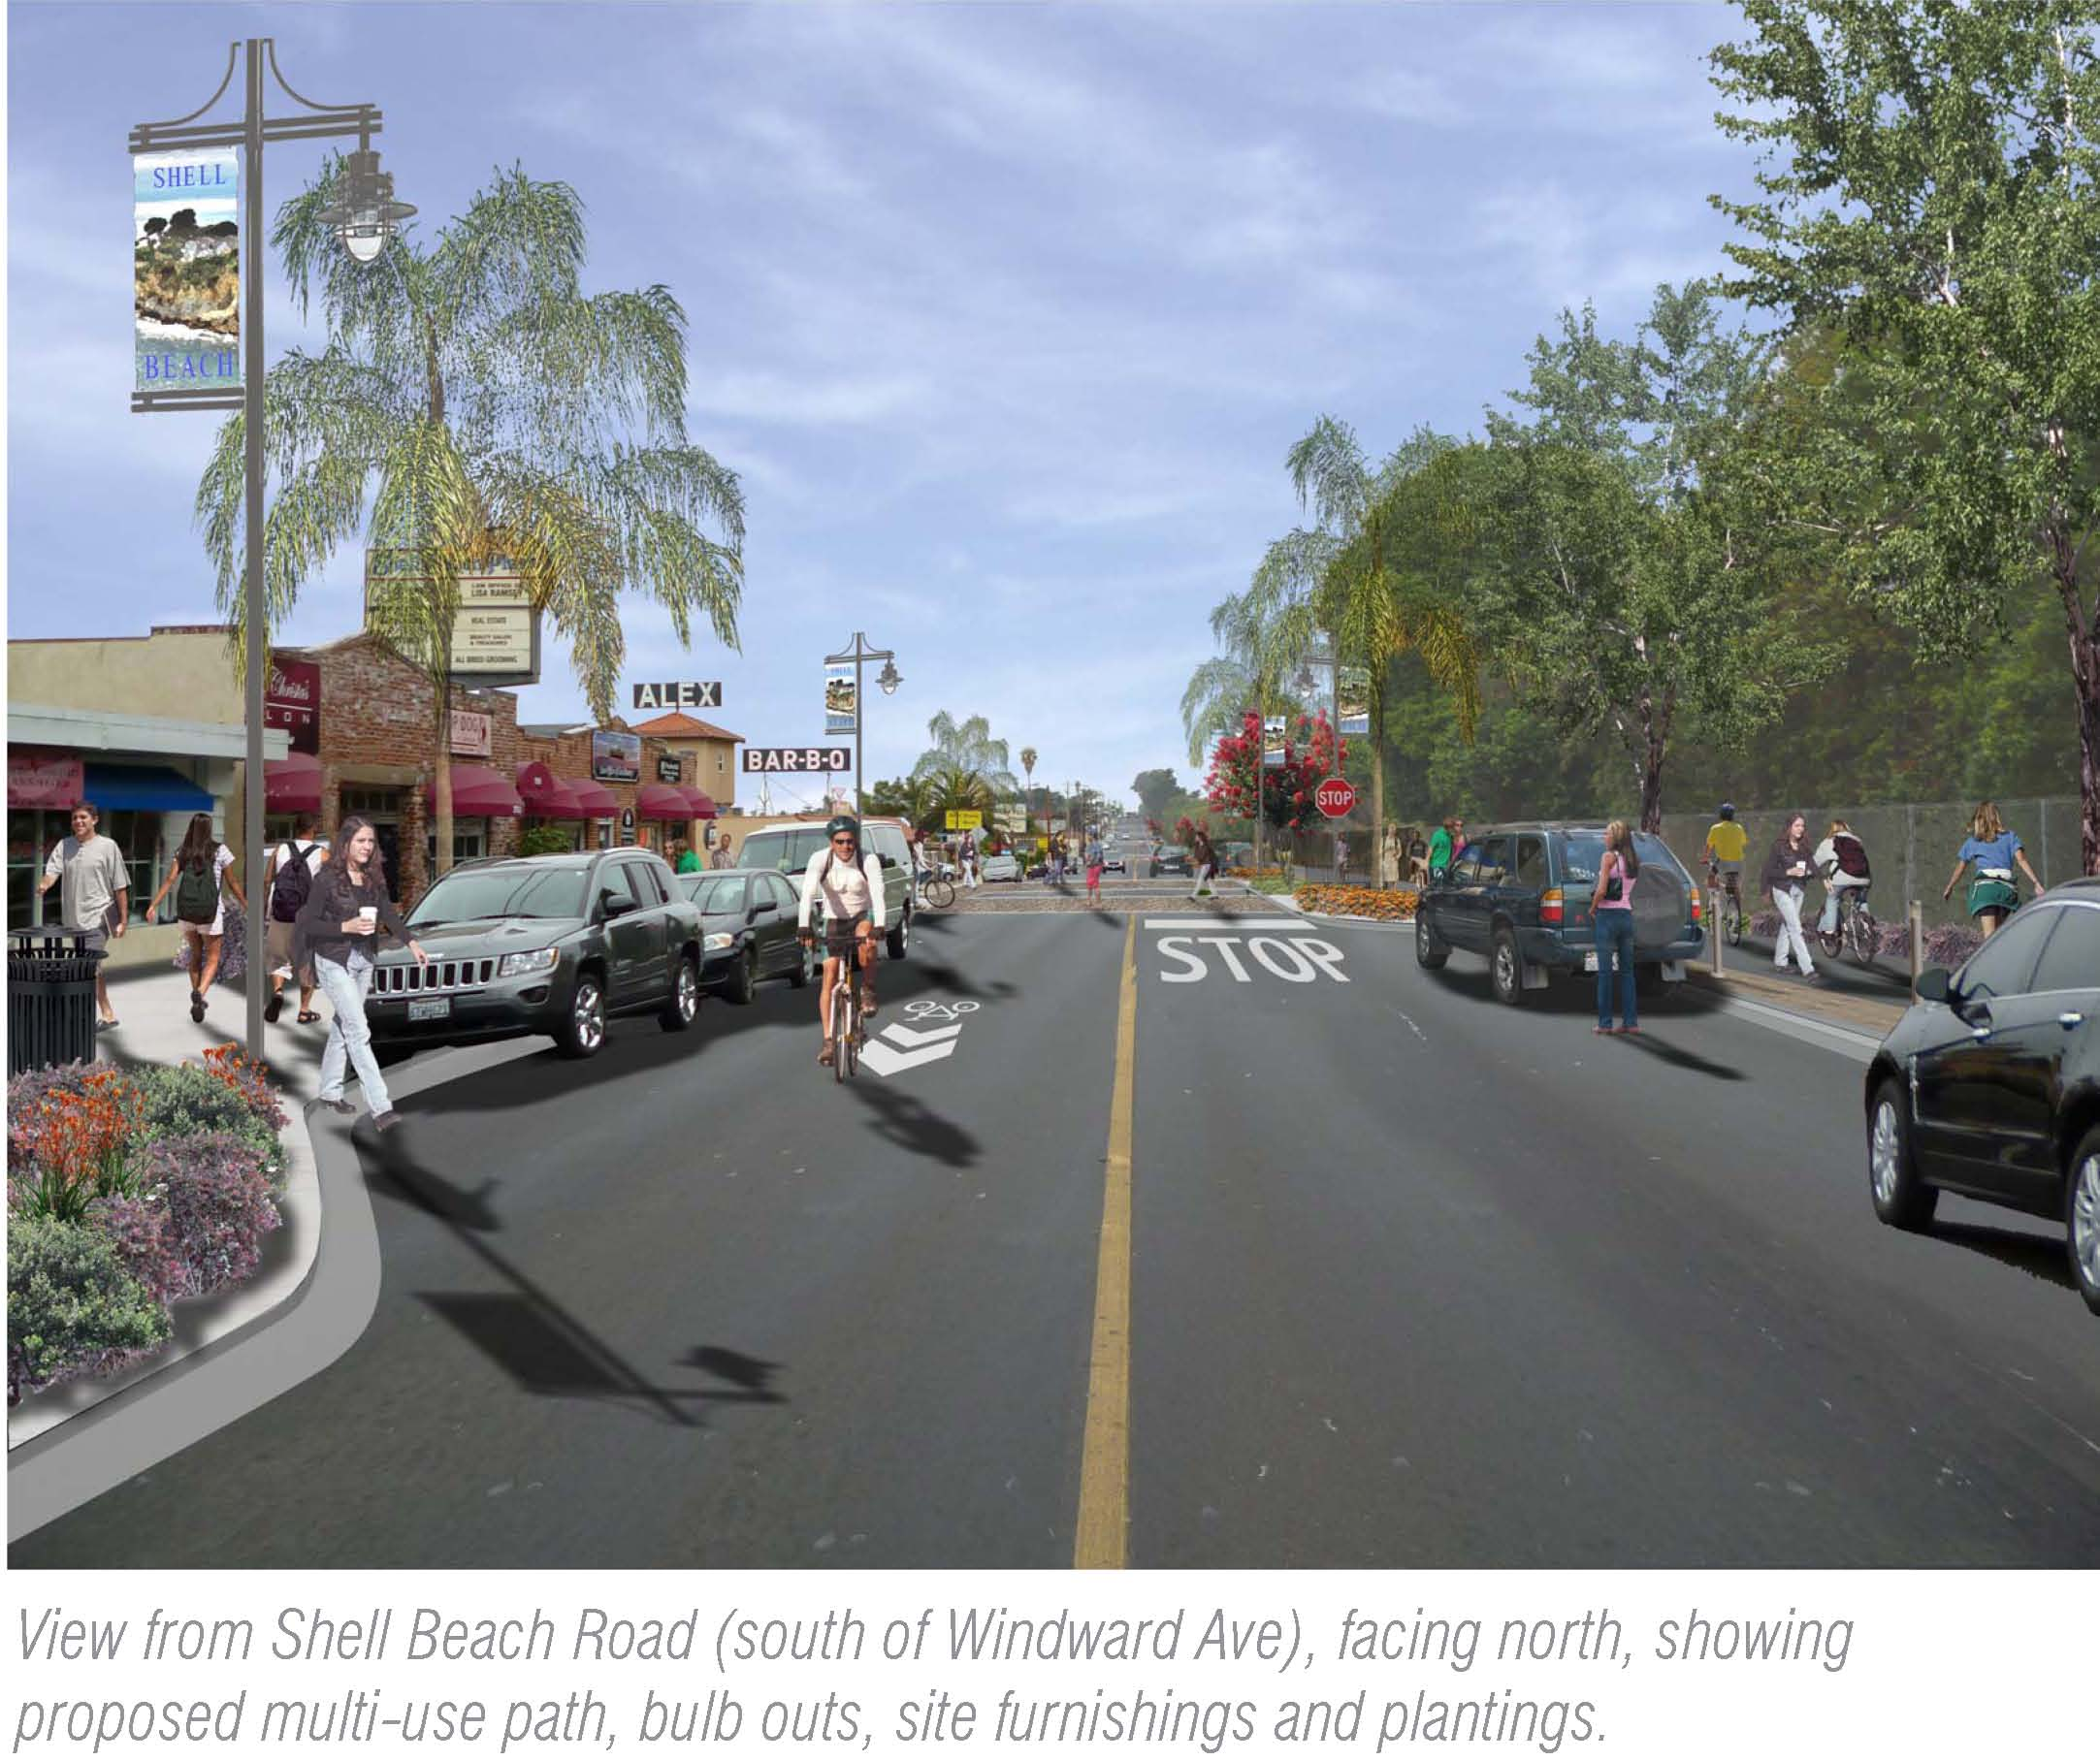 View from Shell Beach Road (south of Windward Avenue), facing north, showing proposed multi-use path